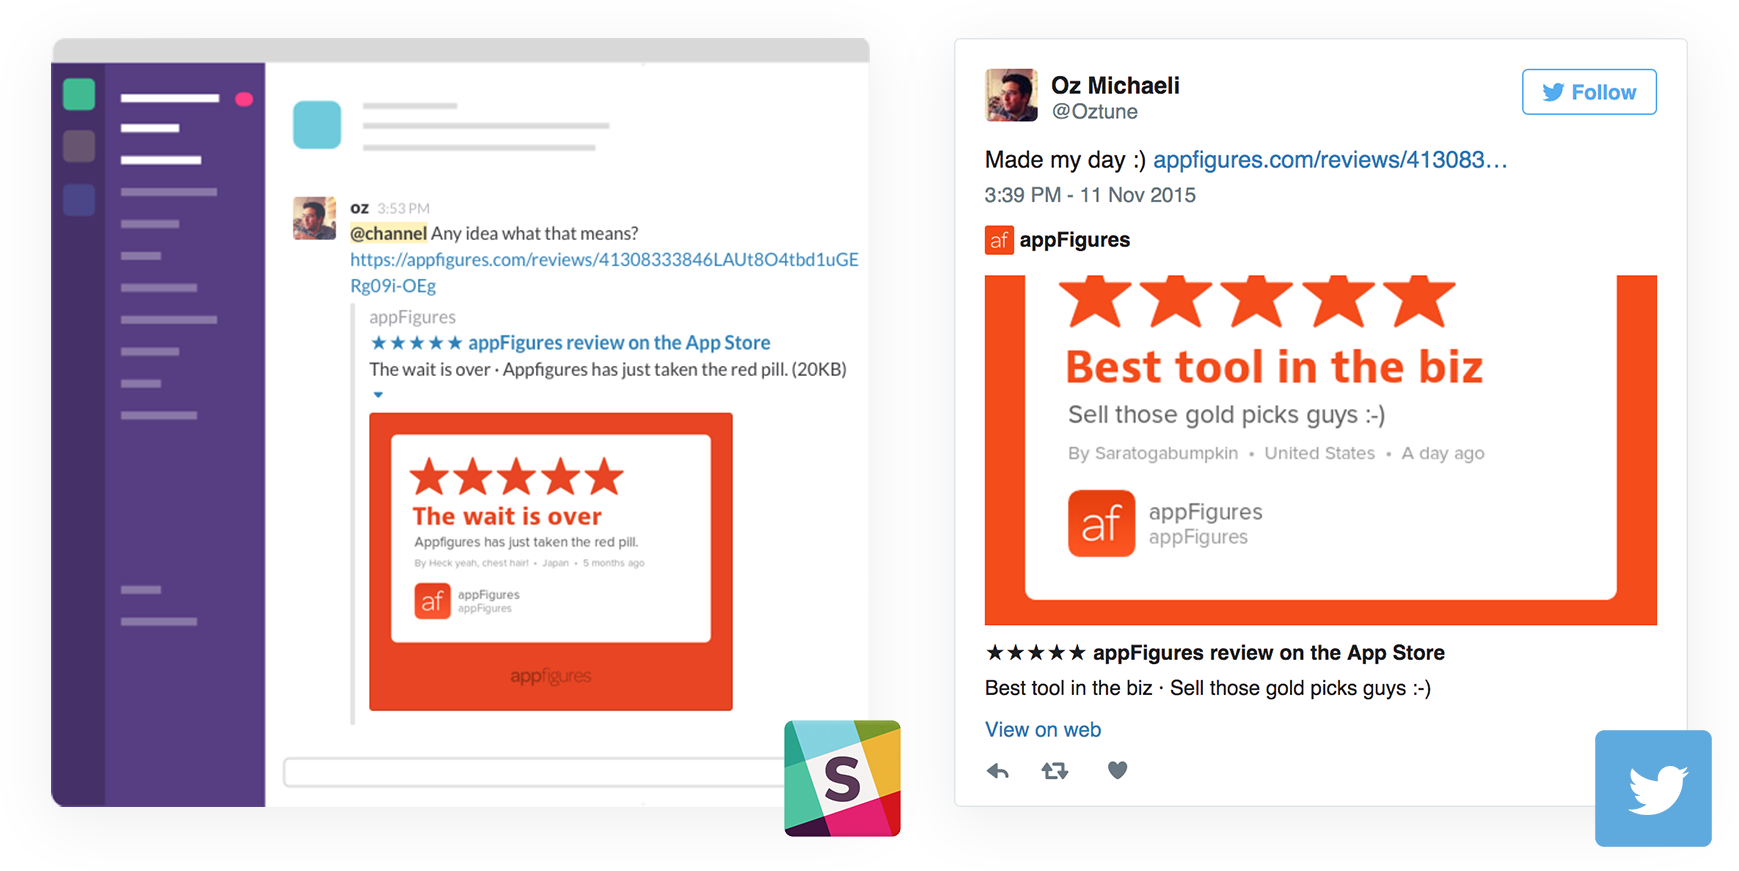 Share app store reviews to Slack, Twitter, and other social networks using Review Cards from appFigures